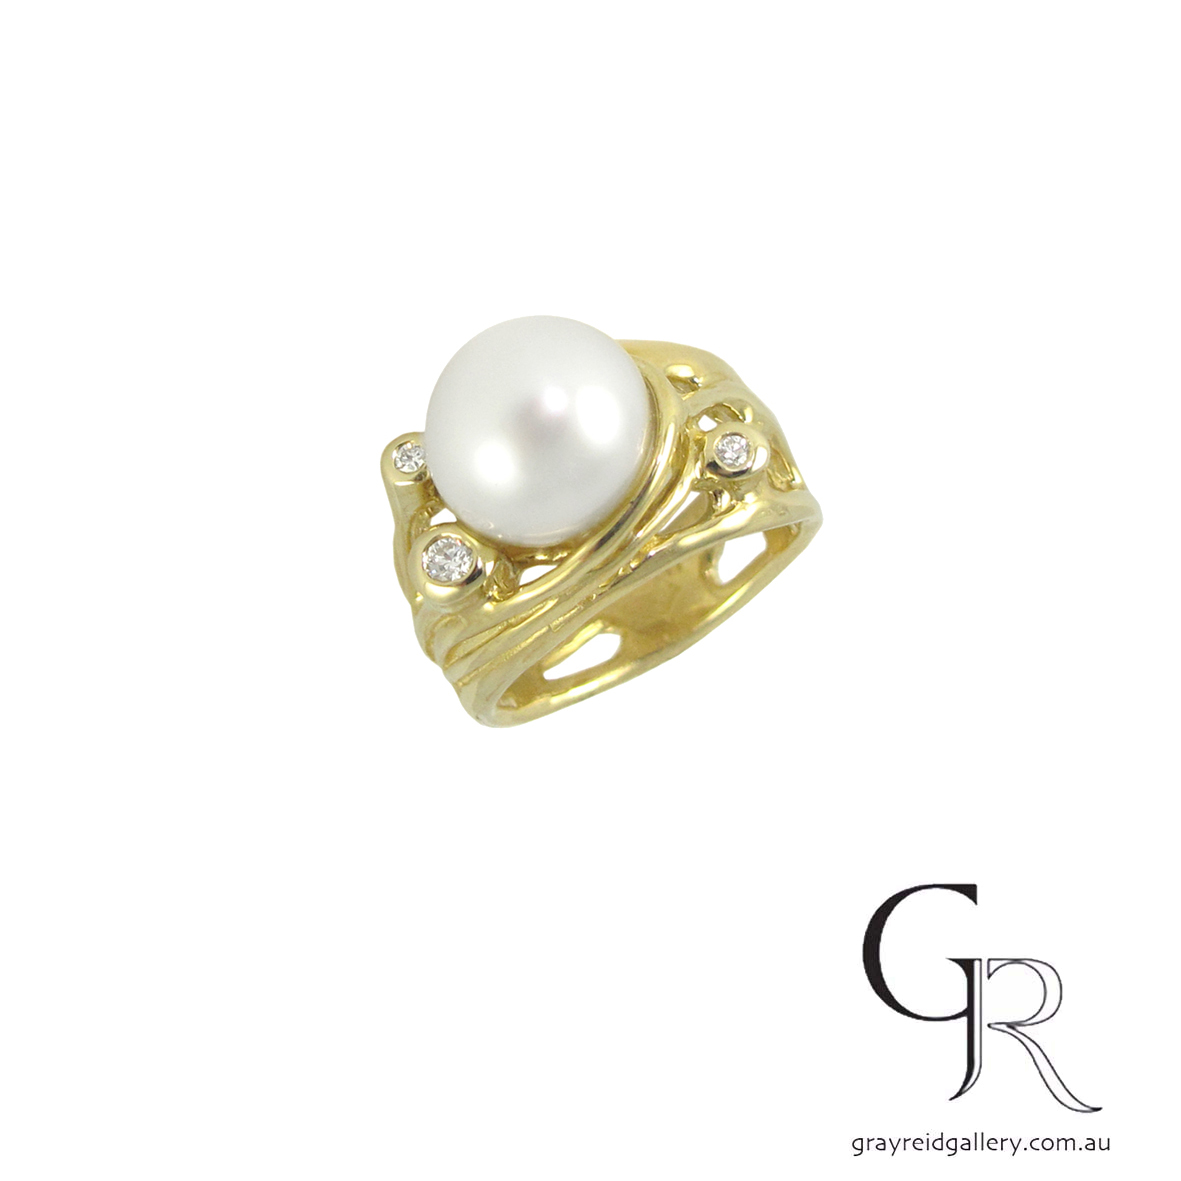 Diamond & Pearl Ring by Darylle Kelly at Gray Reid Gallery.JPG